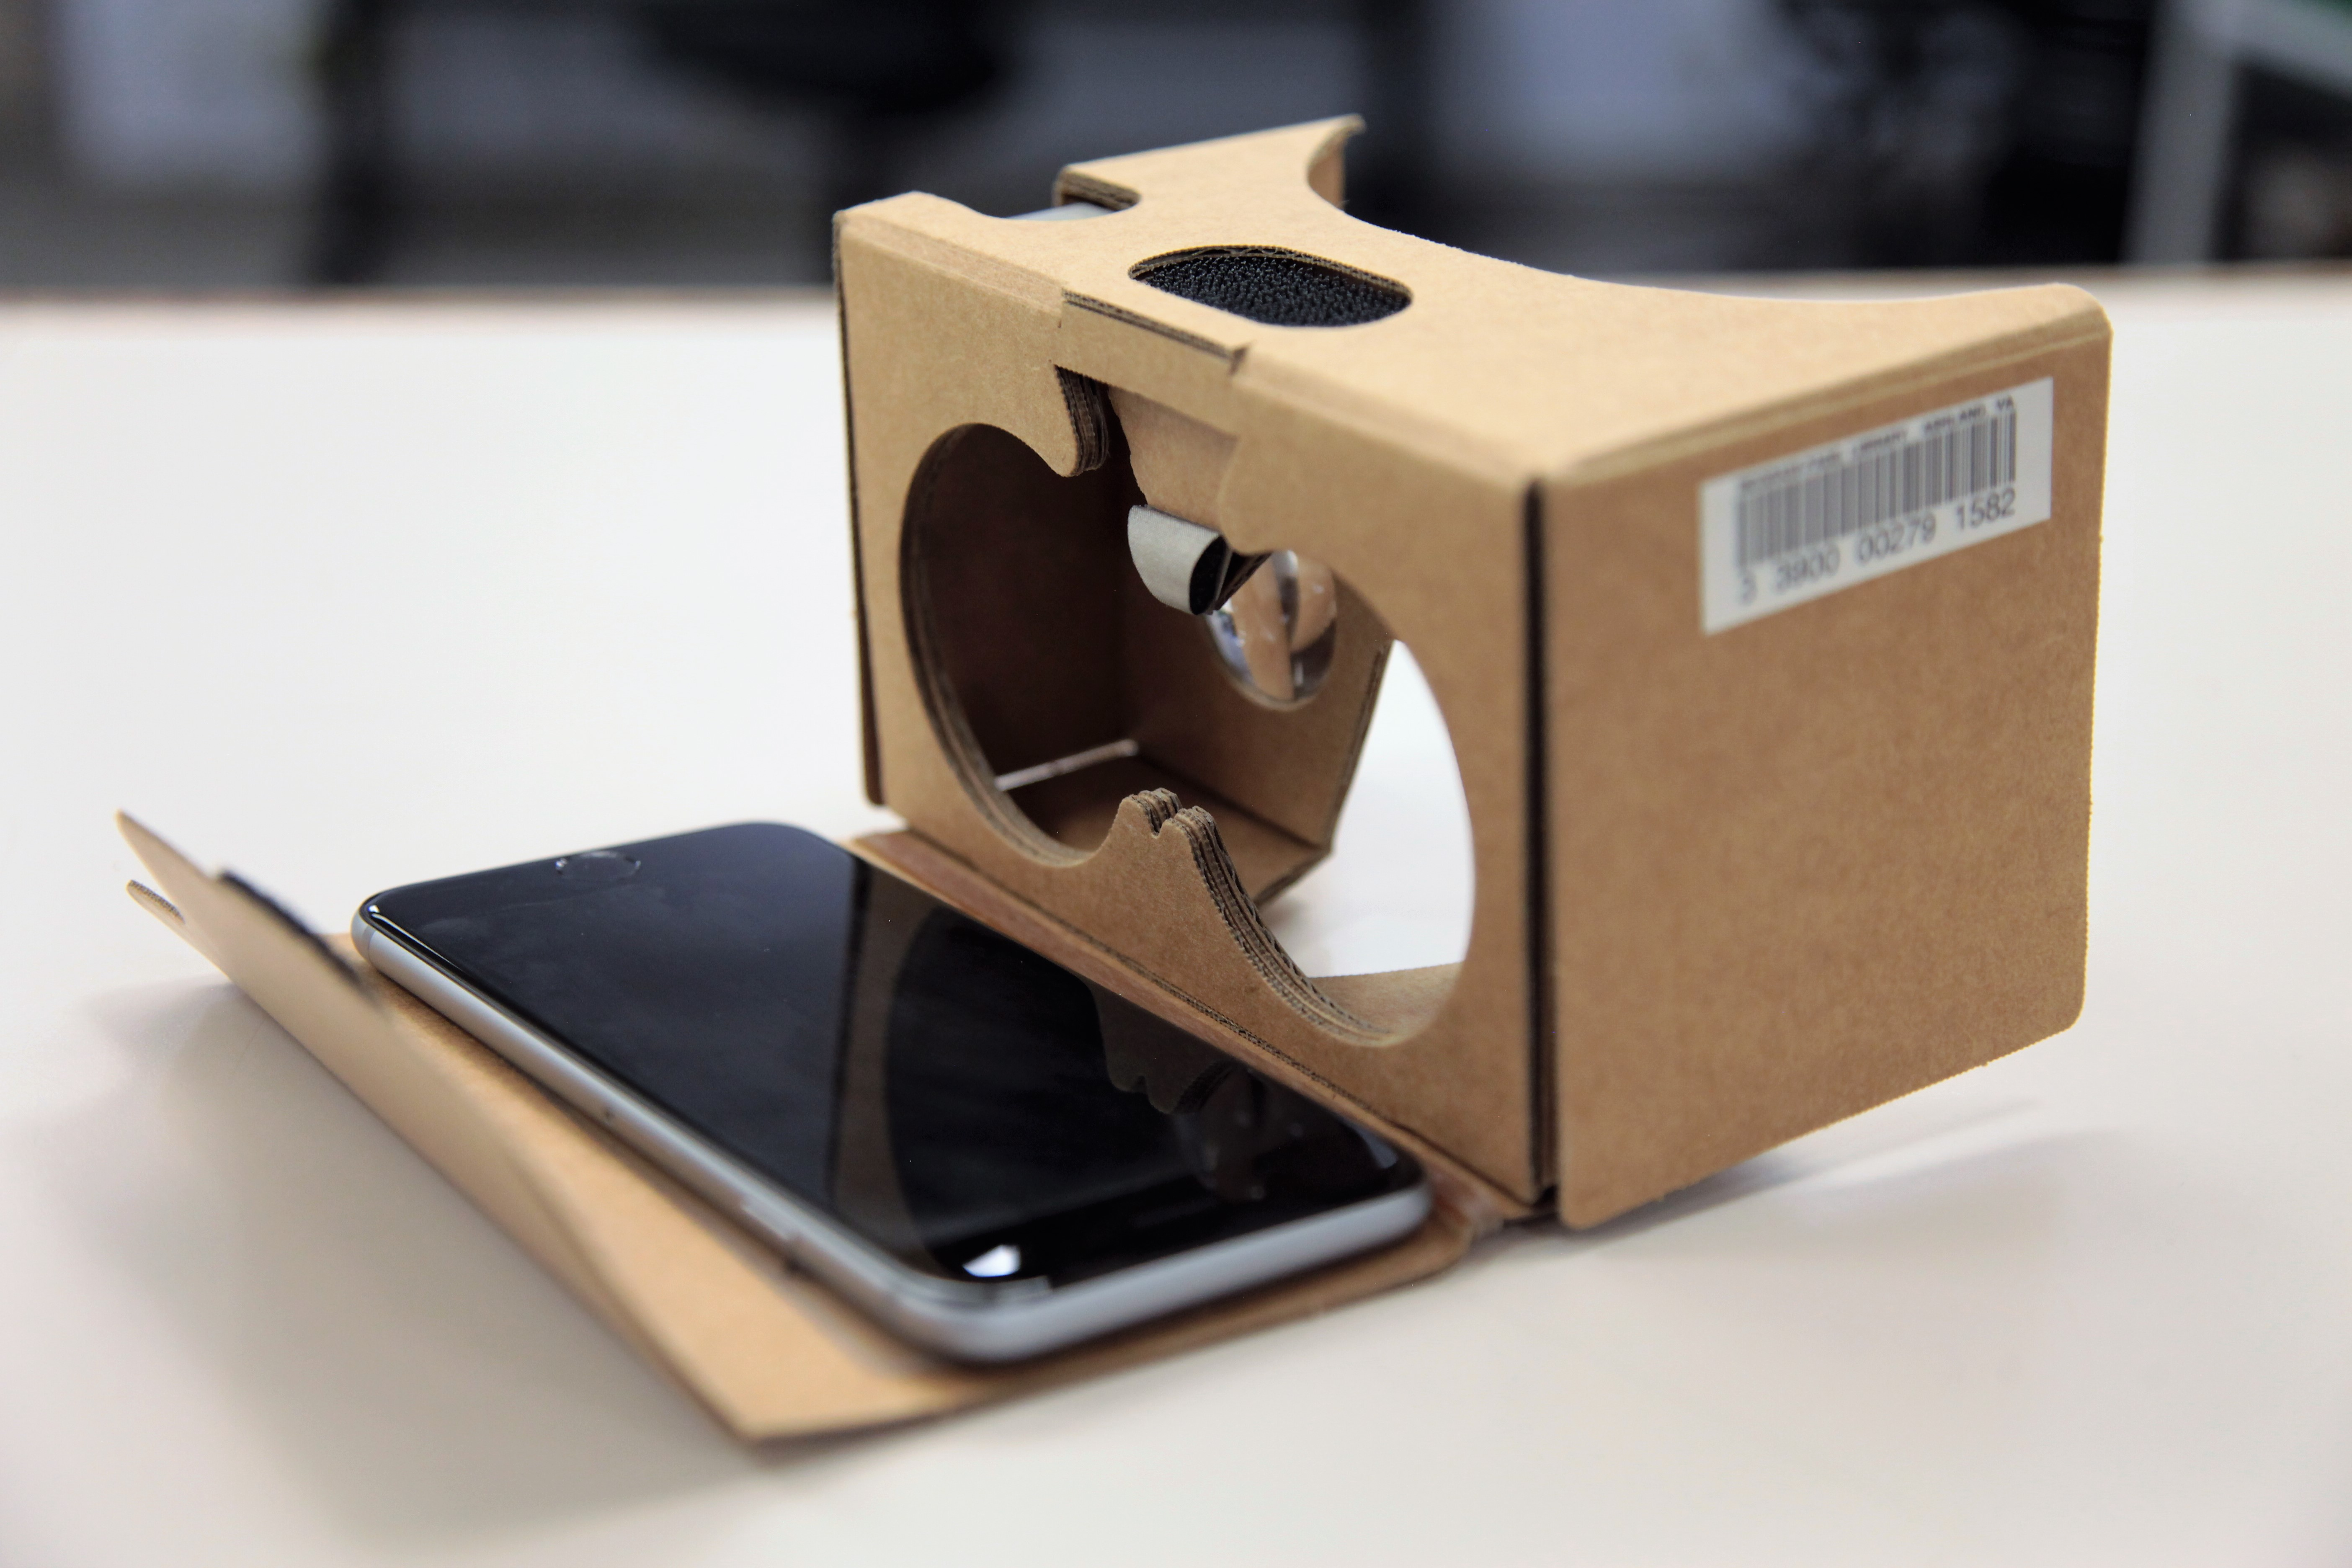 A Google Cardboard Virtual Reality headset with a smart phone sitting on its front flap